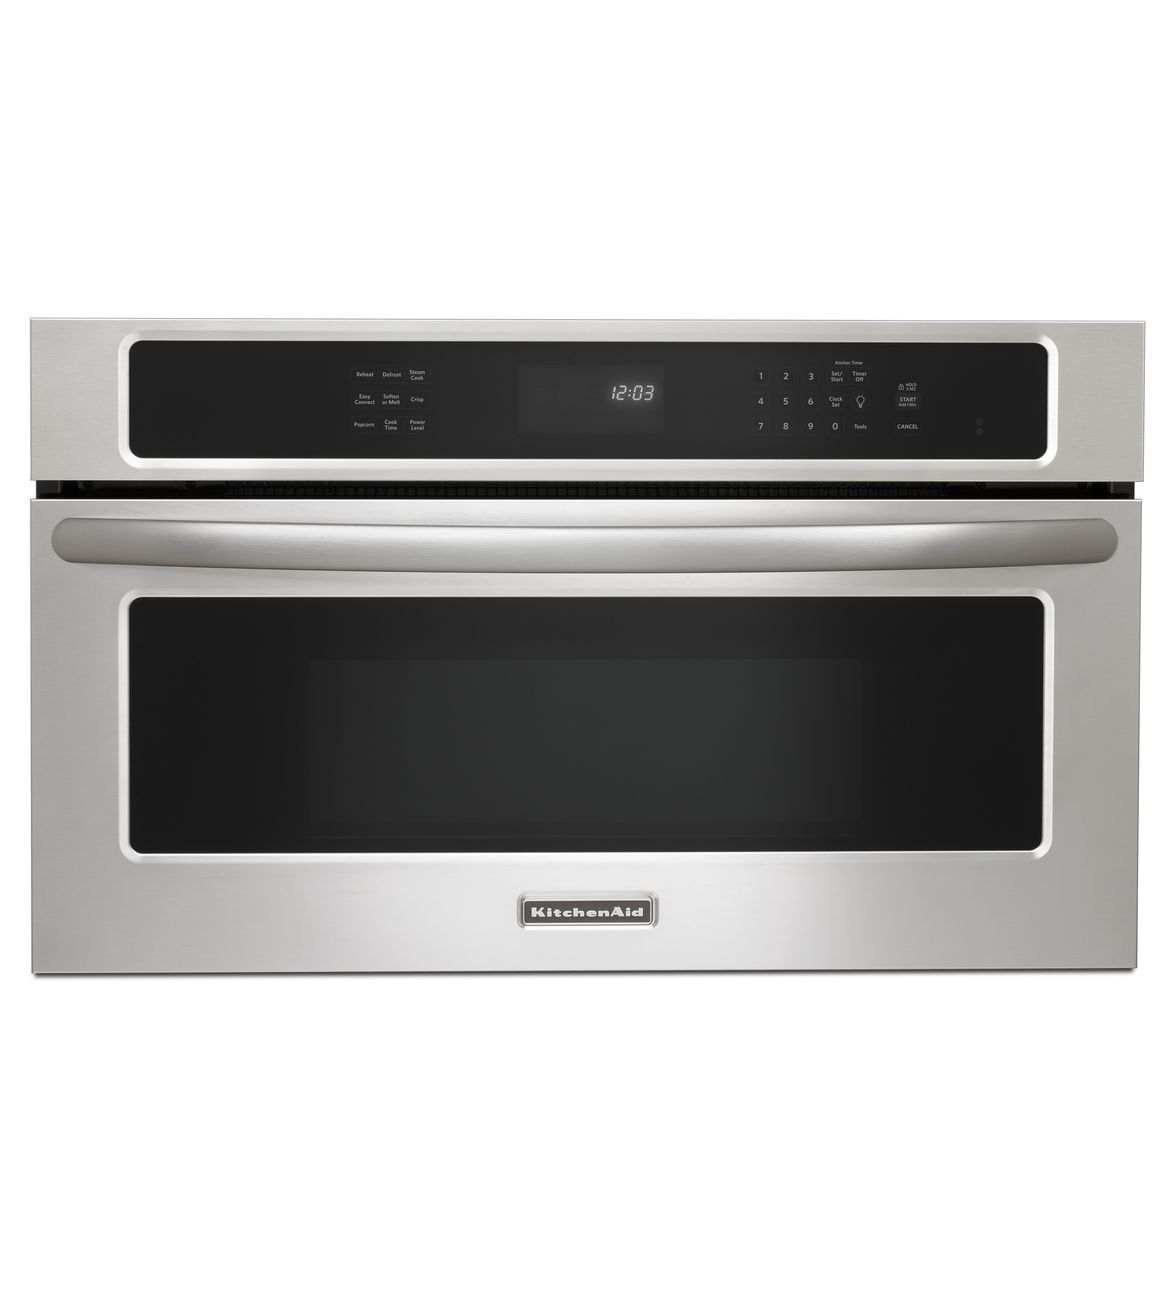 Kitchenaid 27 900 Watt Convection Built In Microwave Architect Series Ii Kbhs179bss Stainless Steel